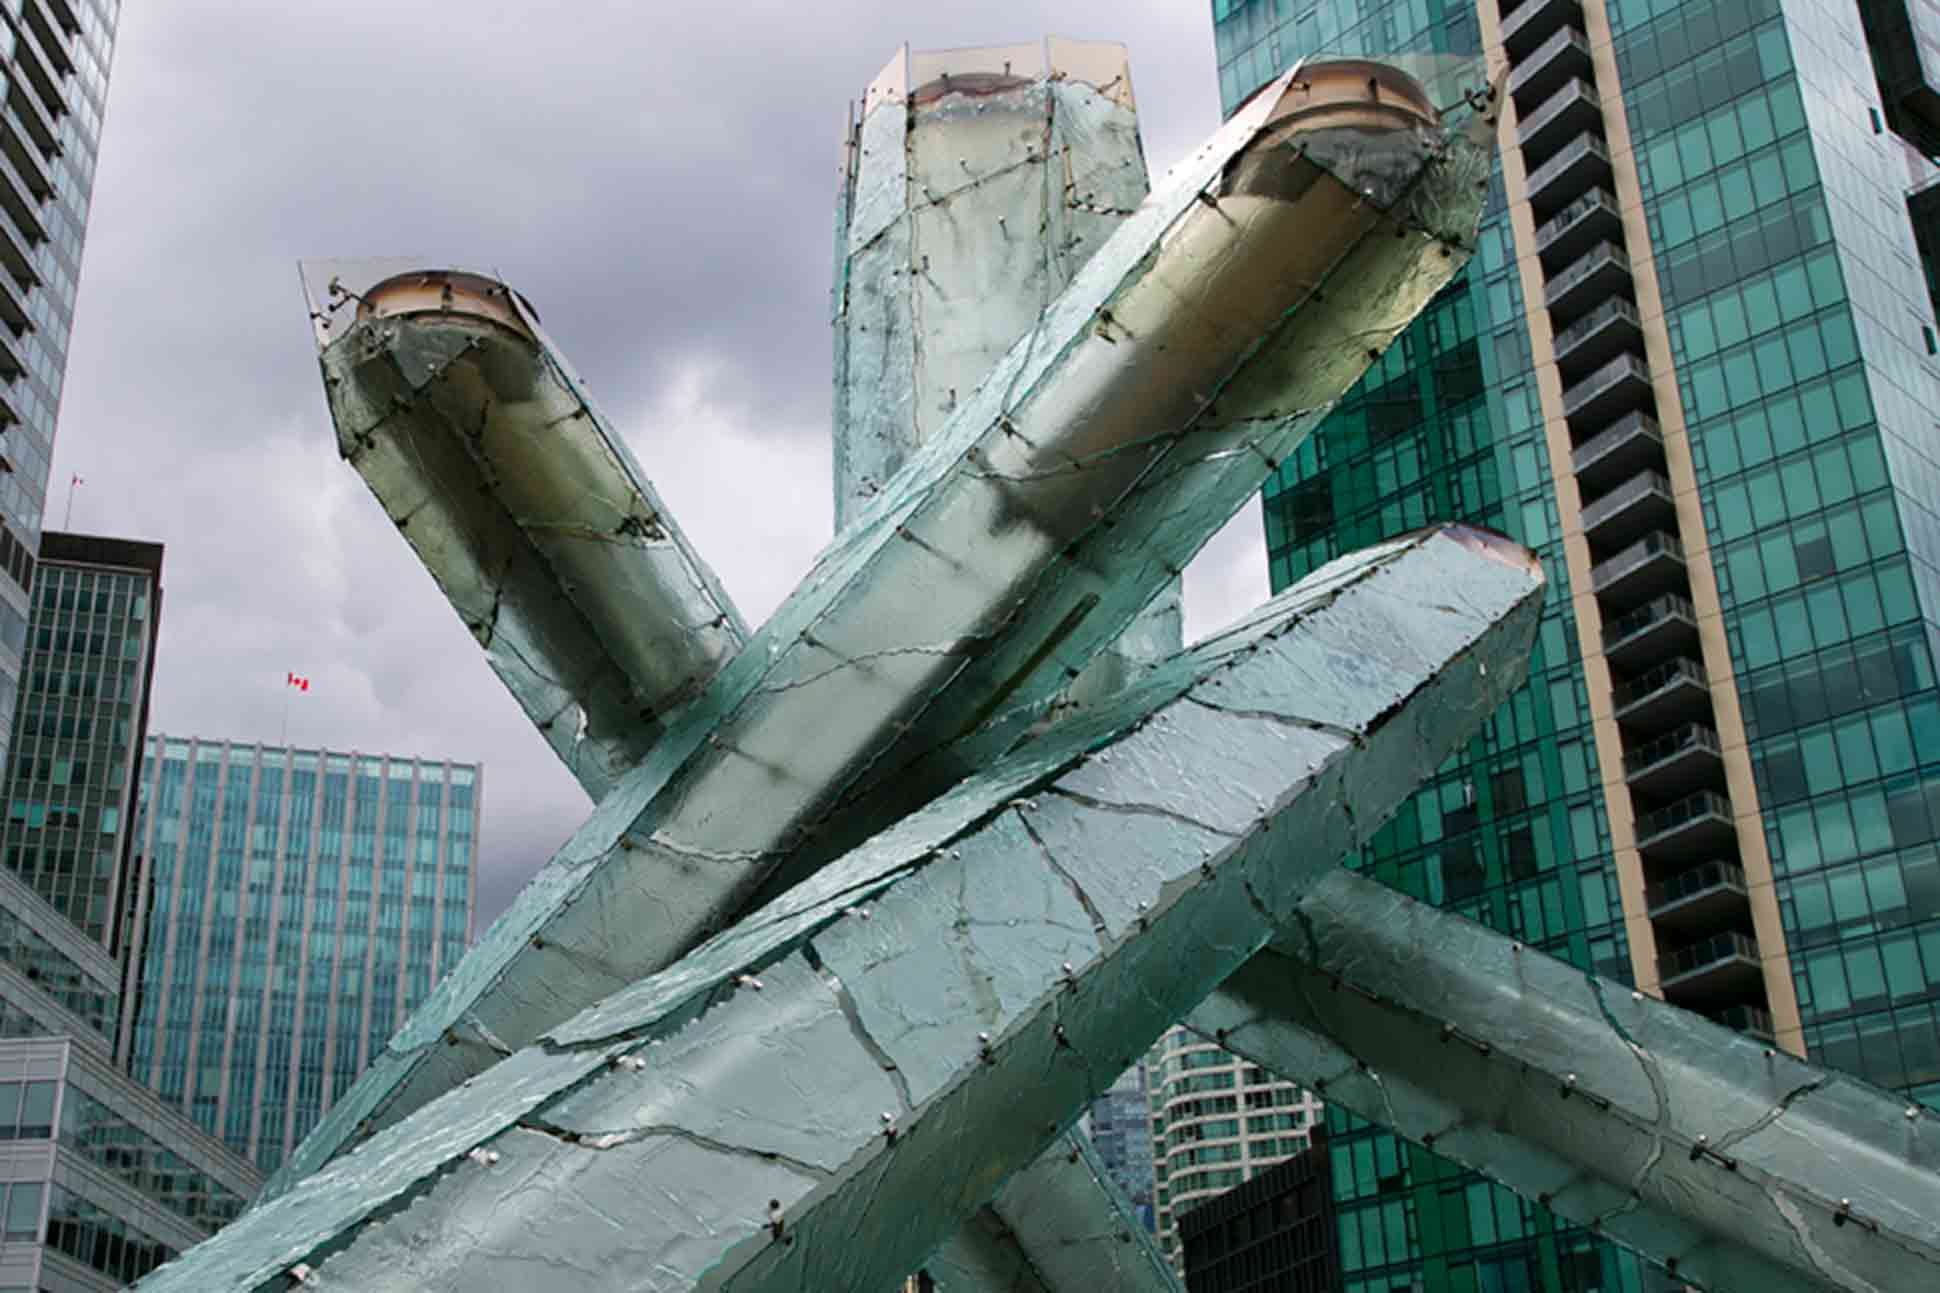 Martin Perry's Vancouver